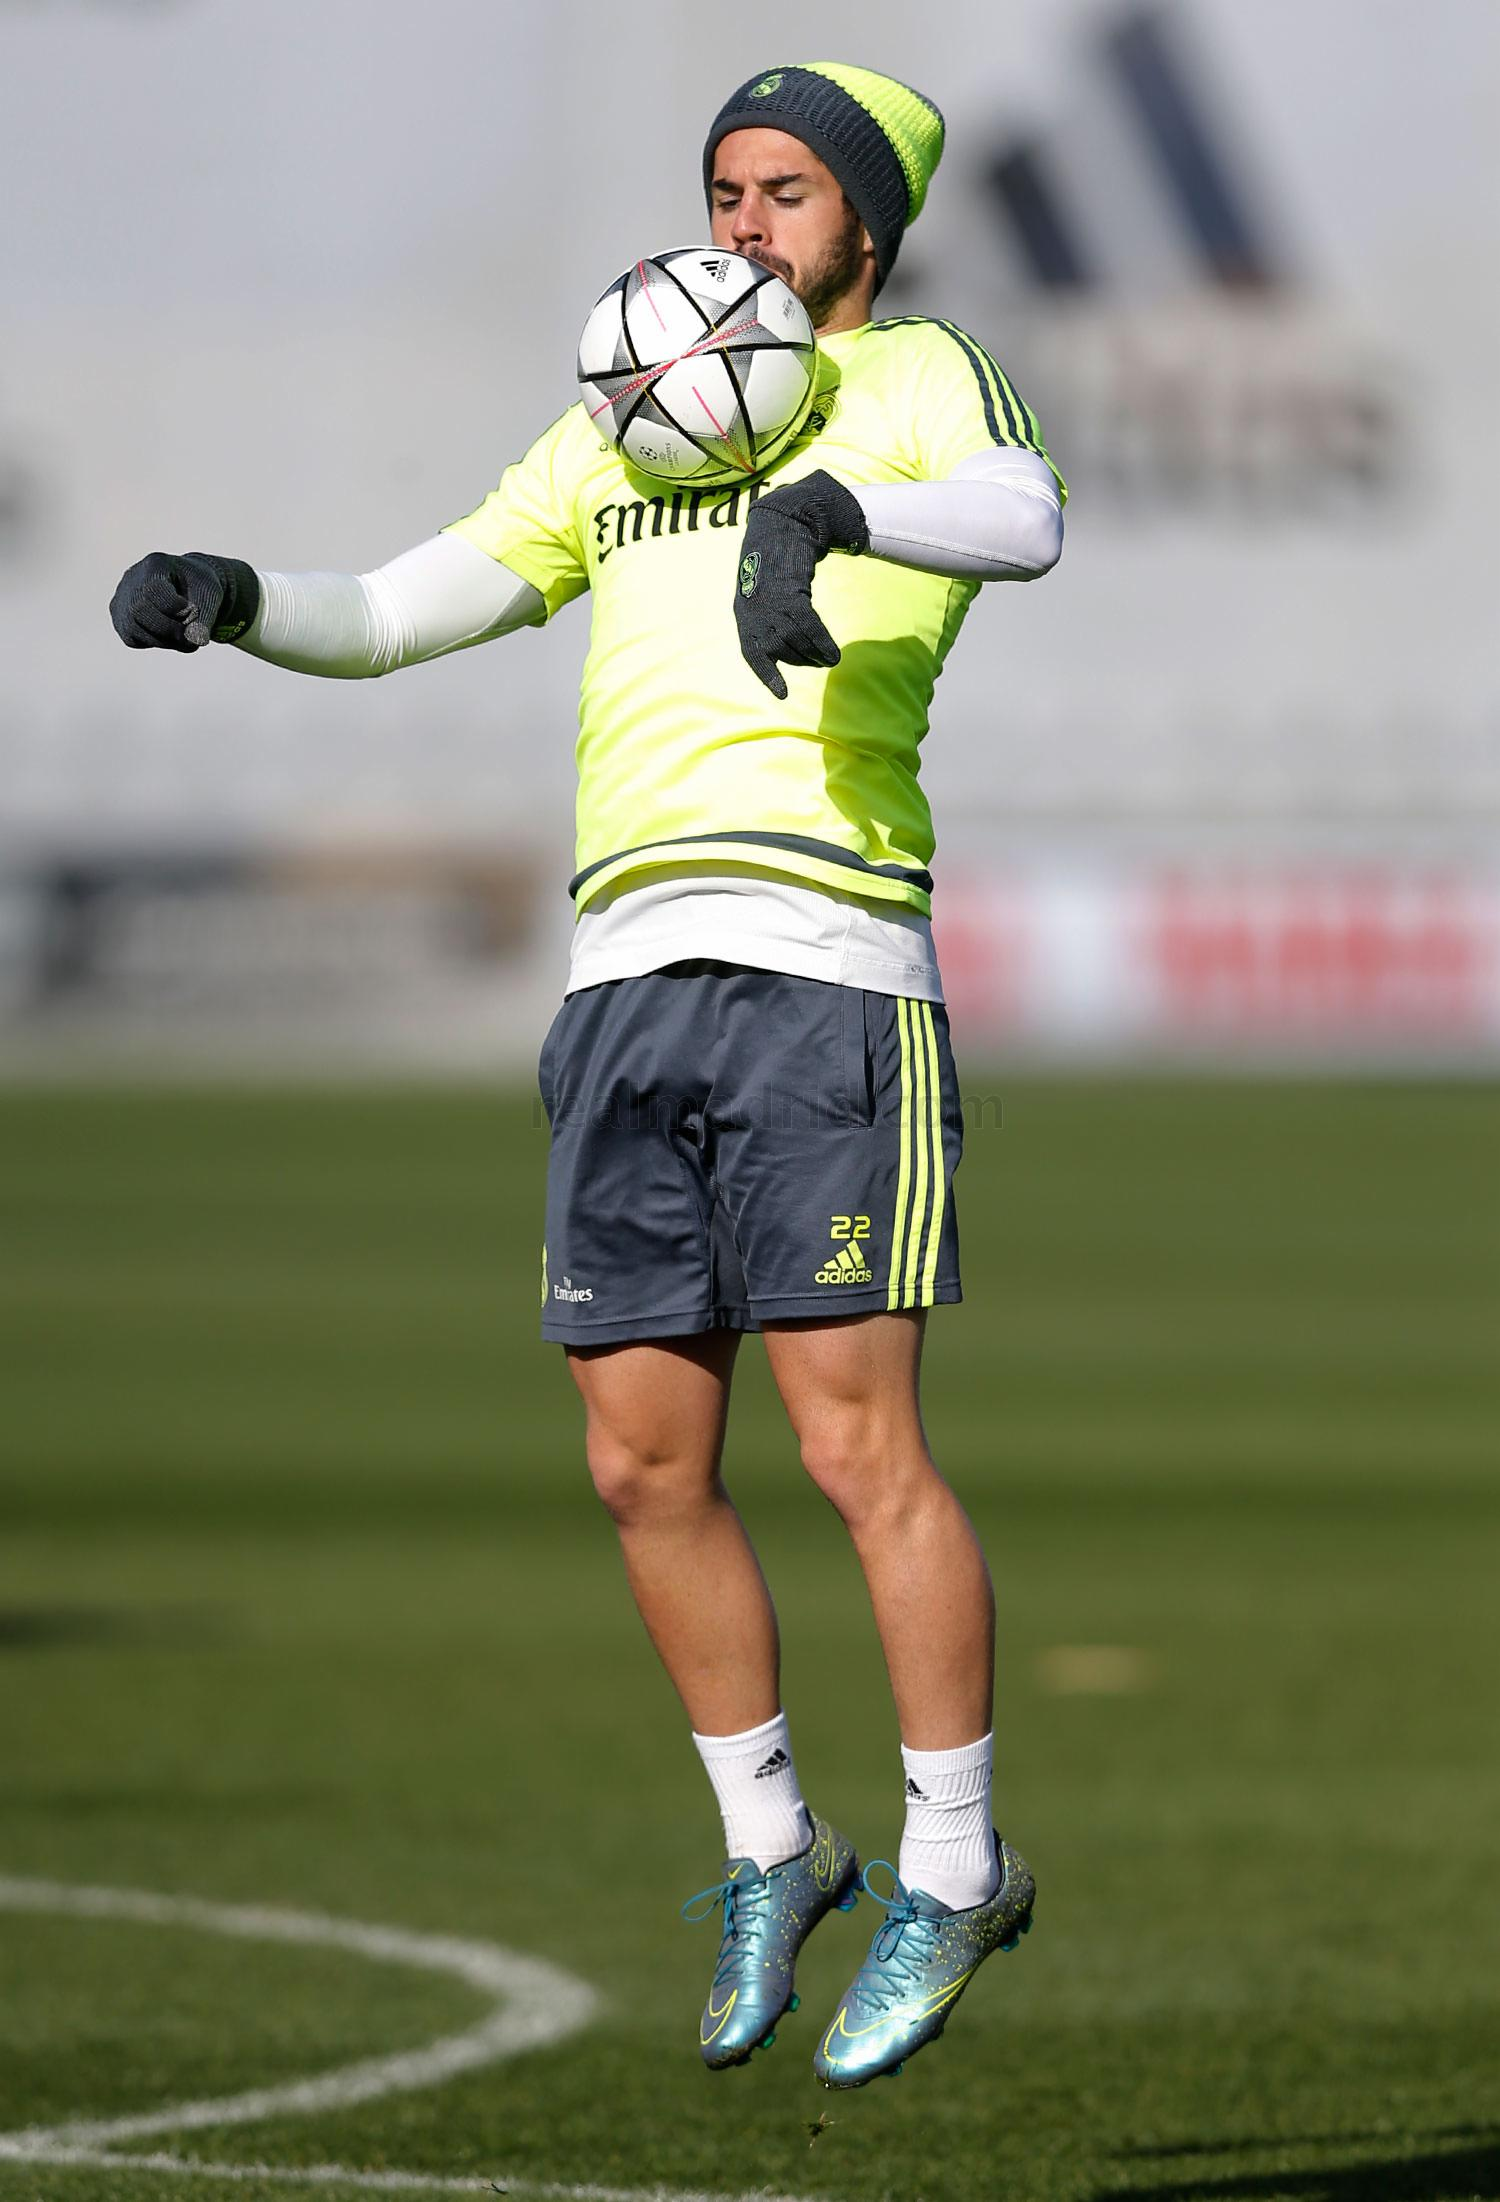 Real Madrid - Entrenamiento del Real Madrid - 15-02-2016